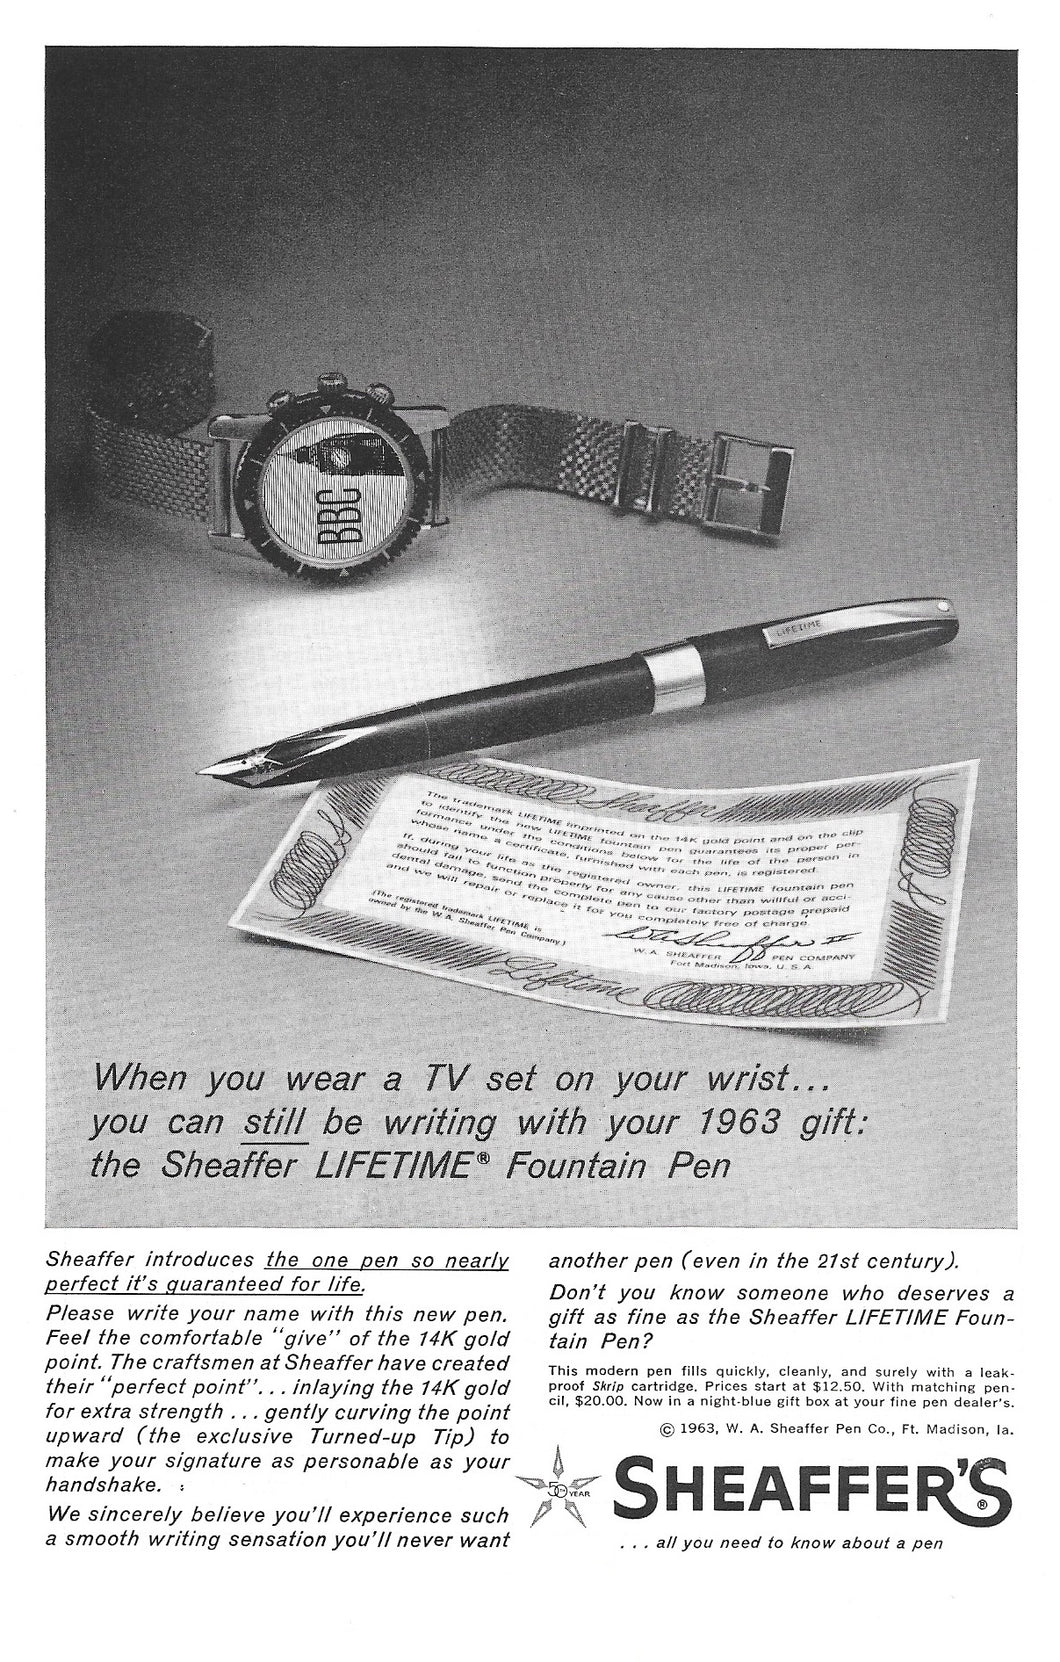 Sheaffer's LIFETIME, Black & White ad, Copr. 1963